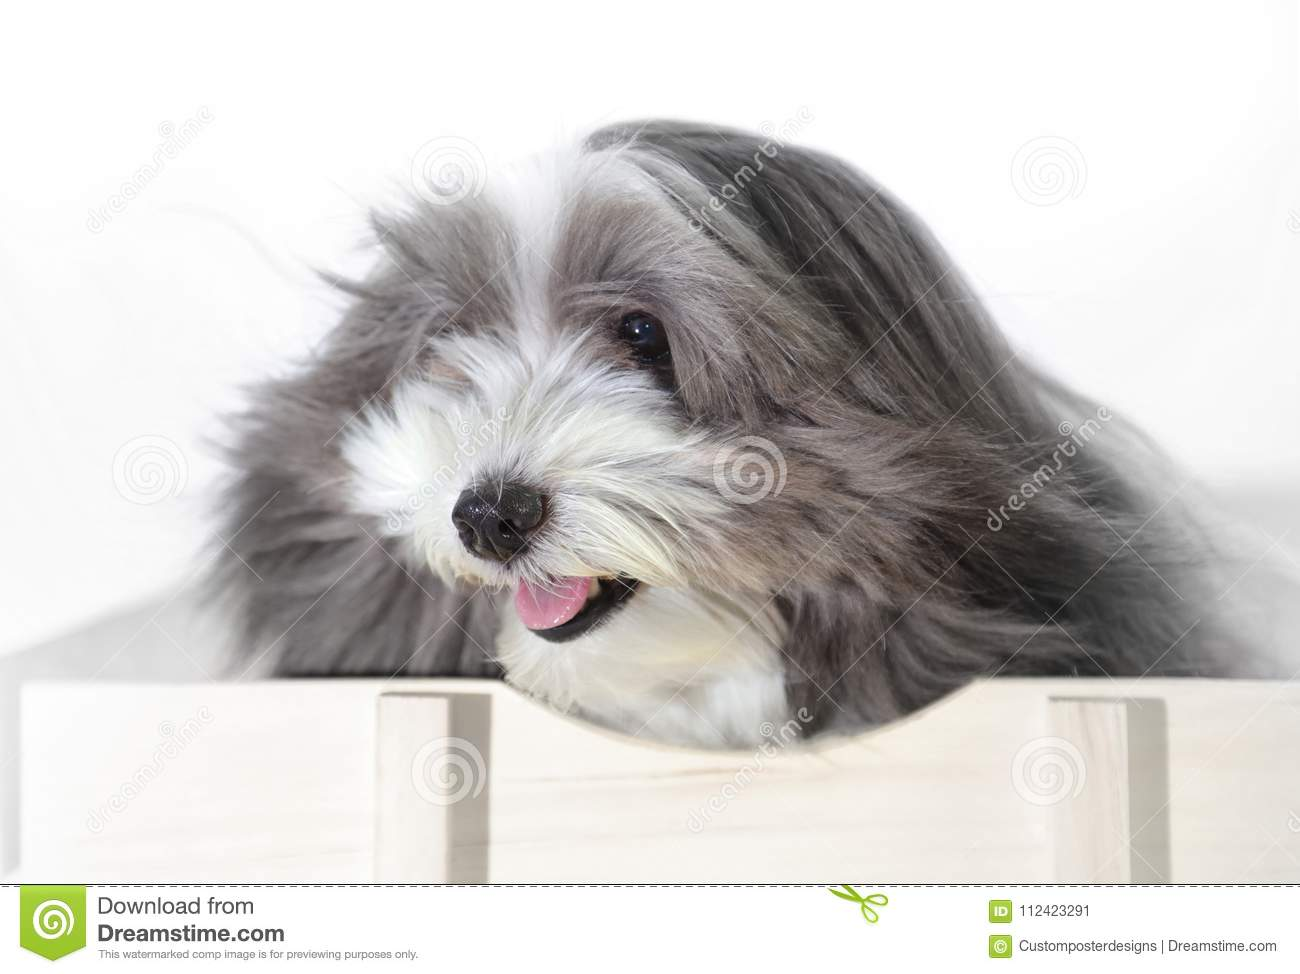 Download A Cute Dog With The Wind Blowing In His Face. Stock Image - Image of adorable, frontal: 112423291